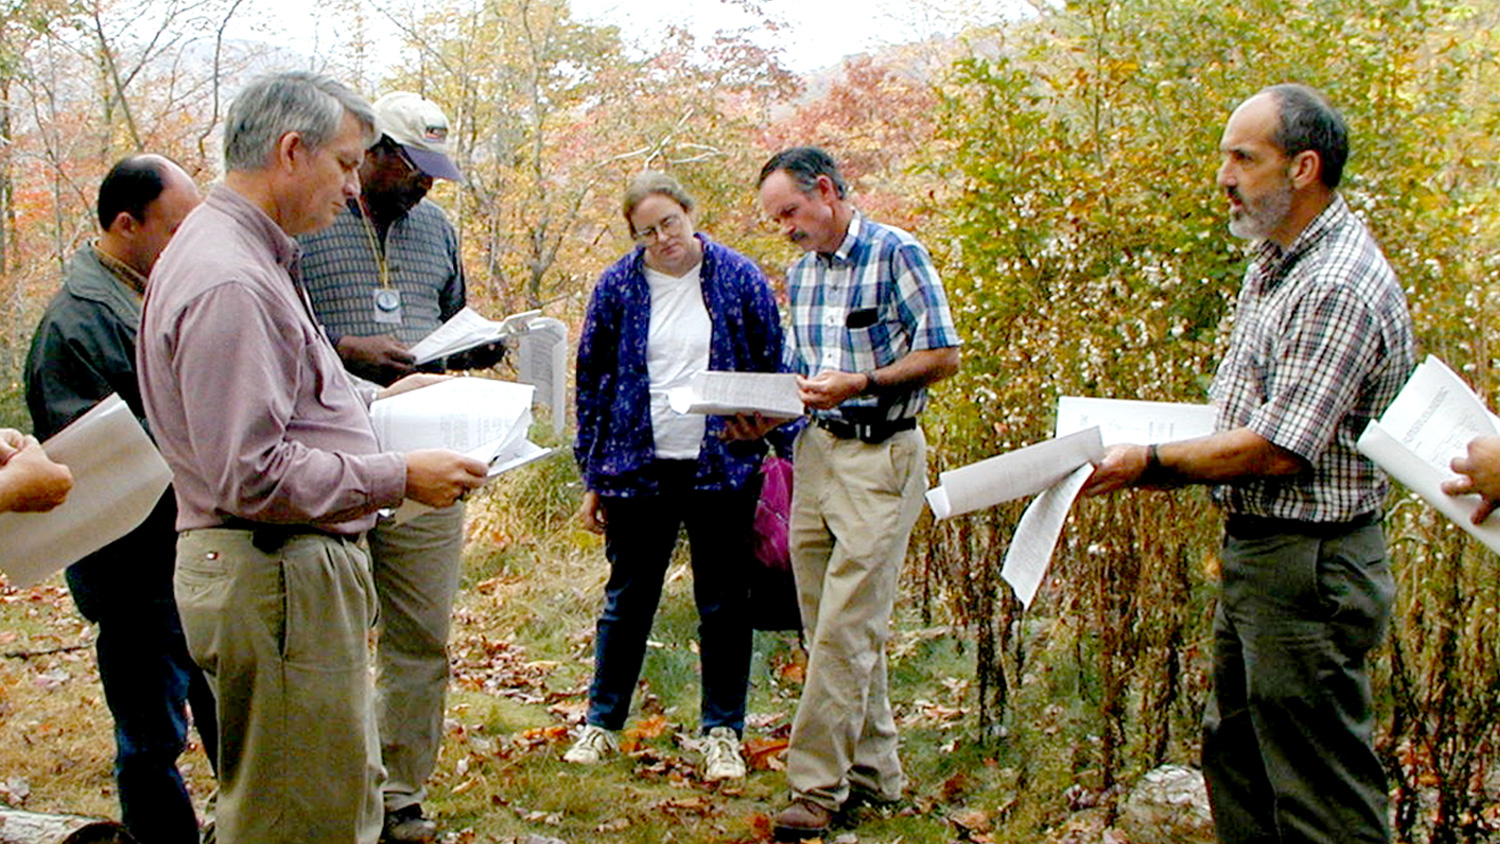 Extension agents in the field - Publications - Forestry and Environmental Resources Spotlight: William Casola - Forestry and Environmental Resources NCState University